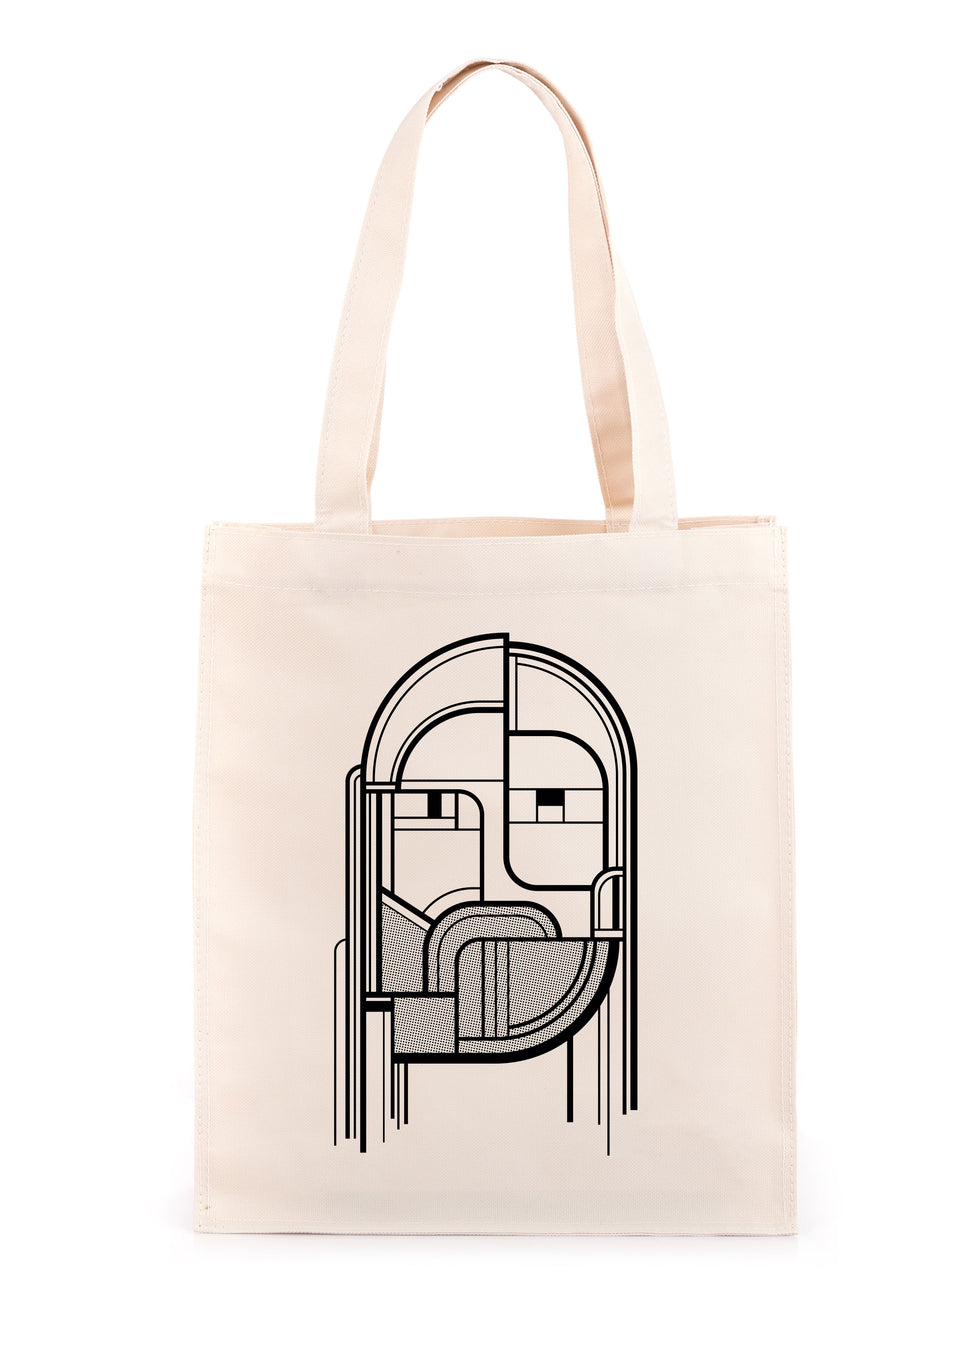 Júníus Meyvant - Face - Natural Tote Bag